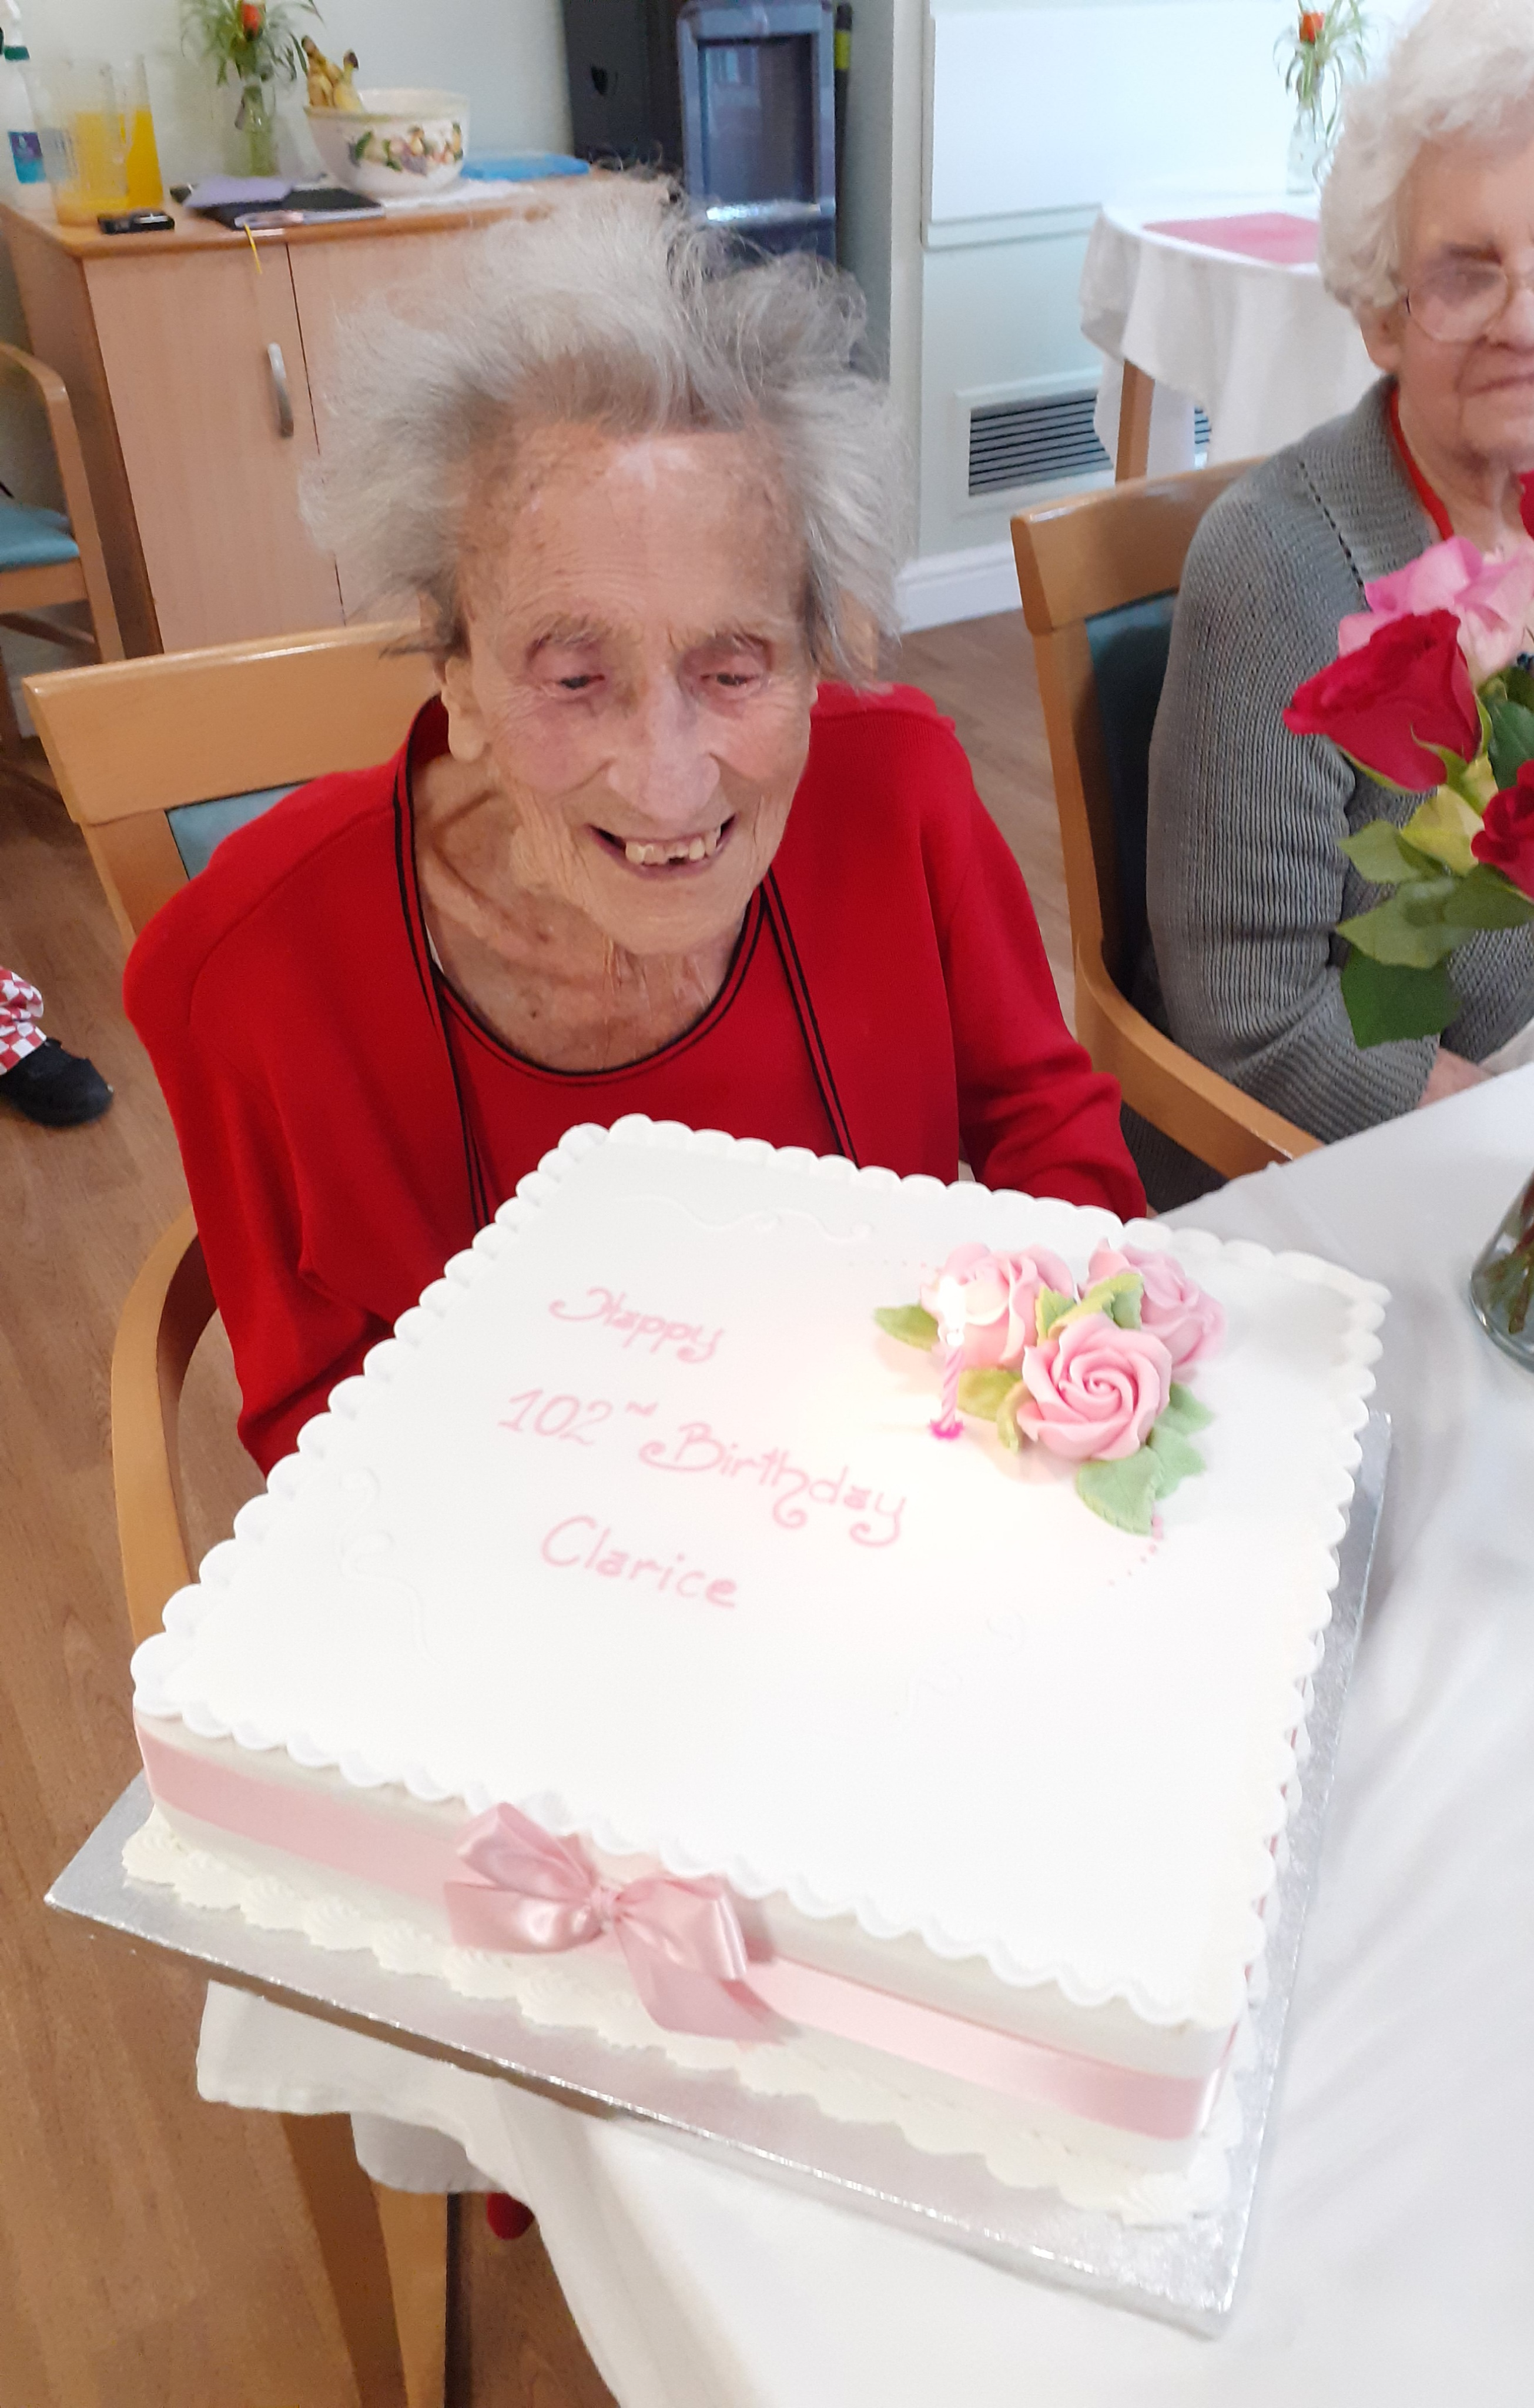 Former grocer who has 'lived a life full of sunshine' celebrates 102nd birthday